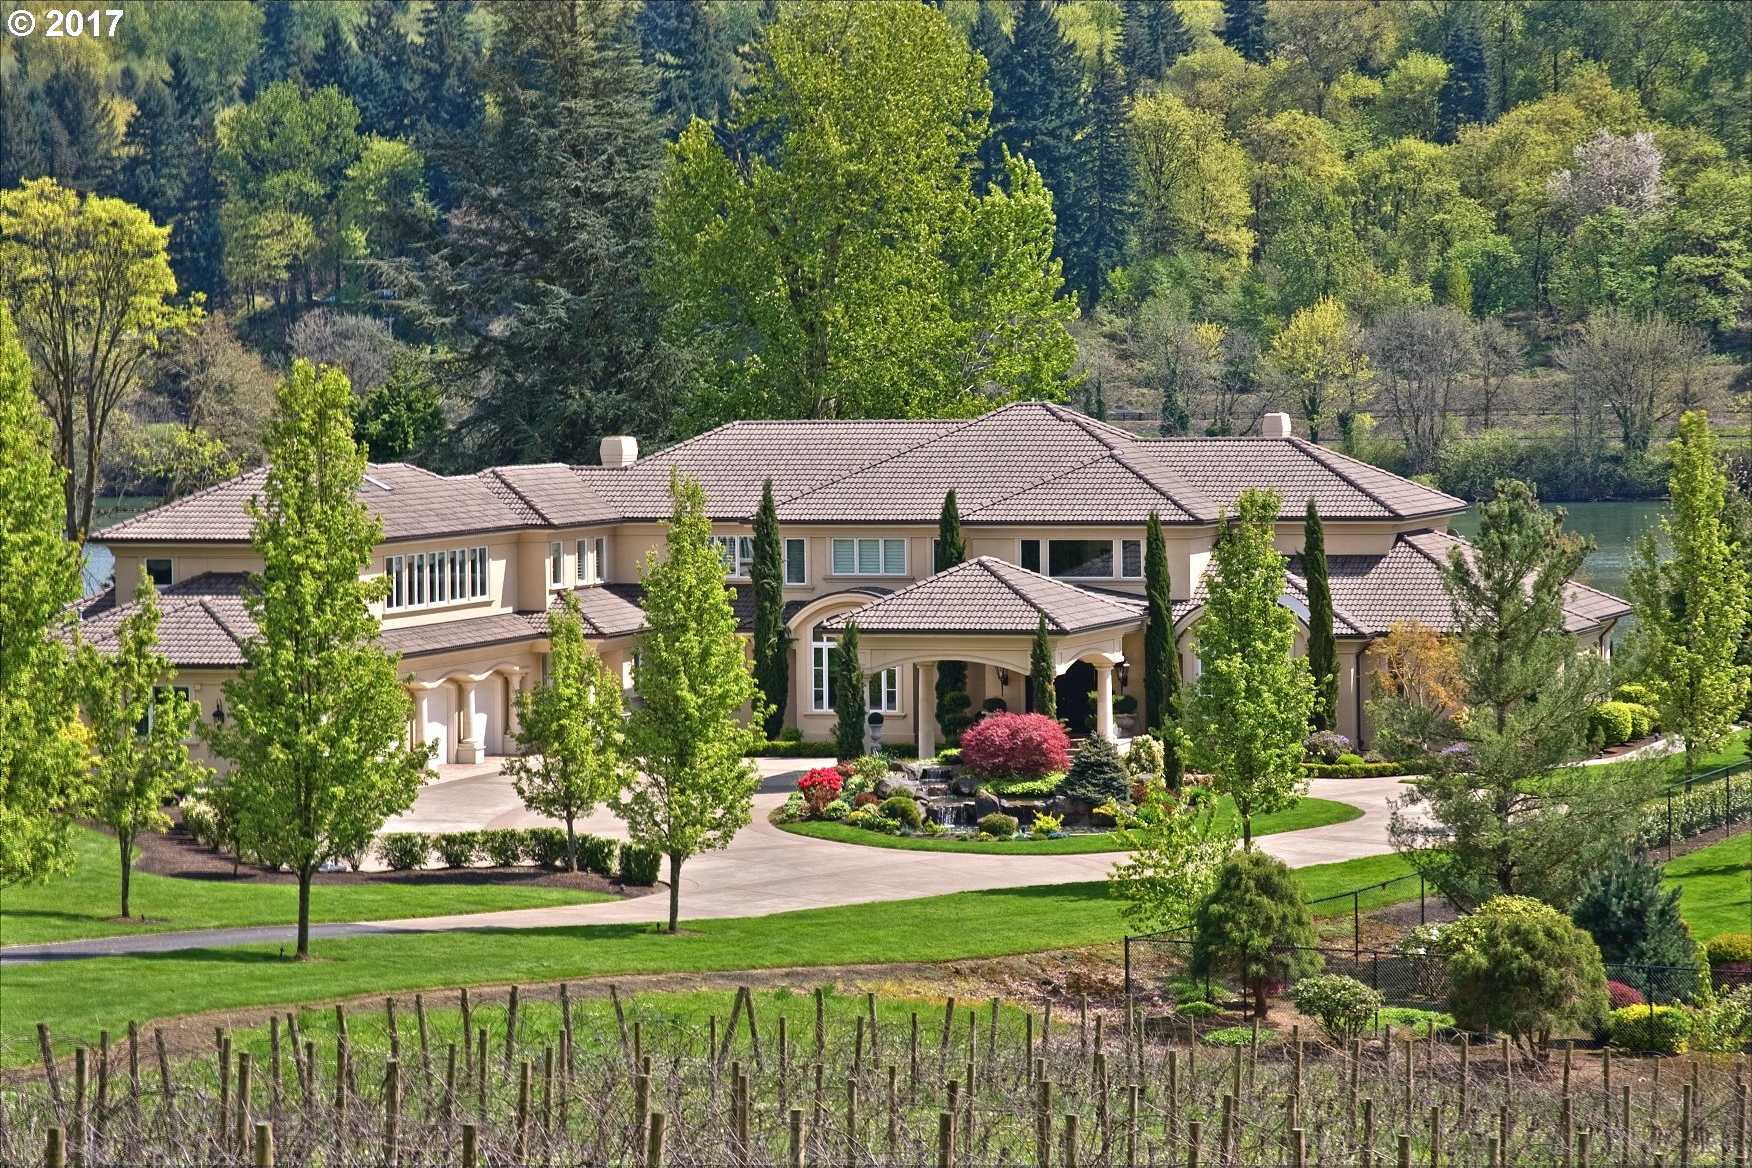 $5,600,000 - 5Br/10Ba -  for Sale in West Linn